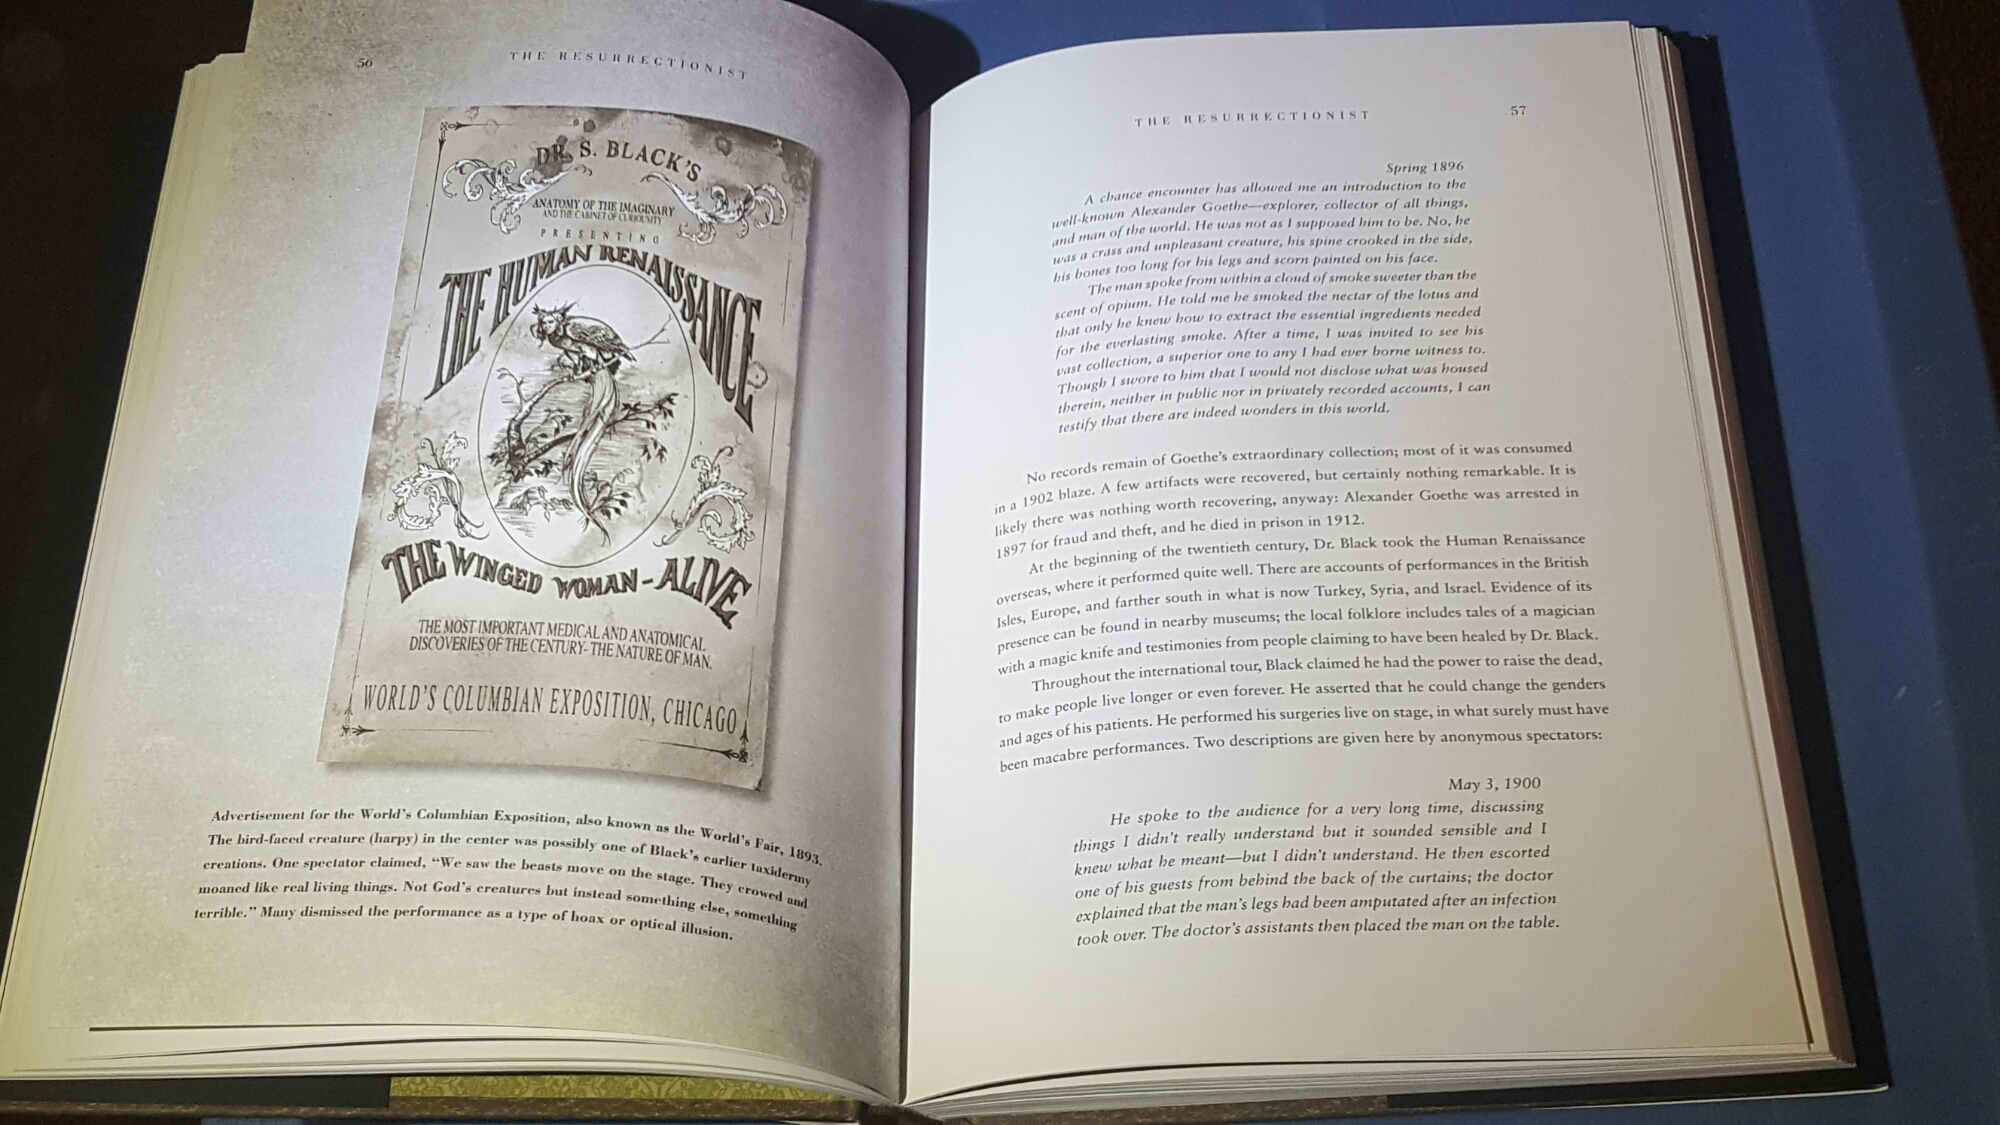 frankenstein book review essay Suggested essay topics narrative in frankenstein shifts from robert walton to victor frankenstein (even shelley's preface to the book can be read as an.